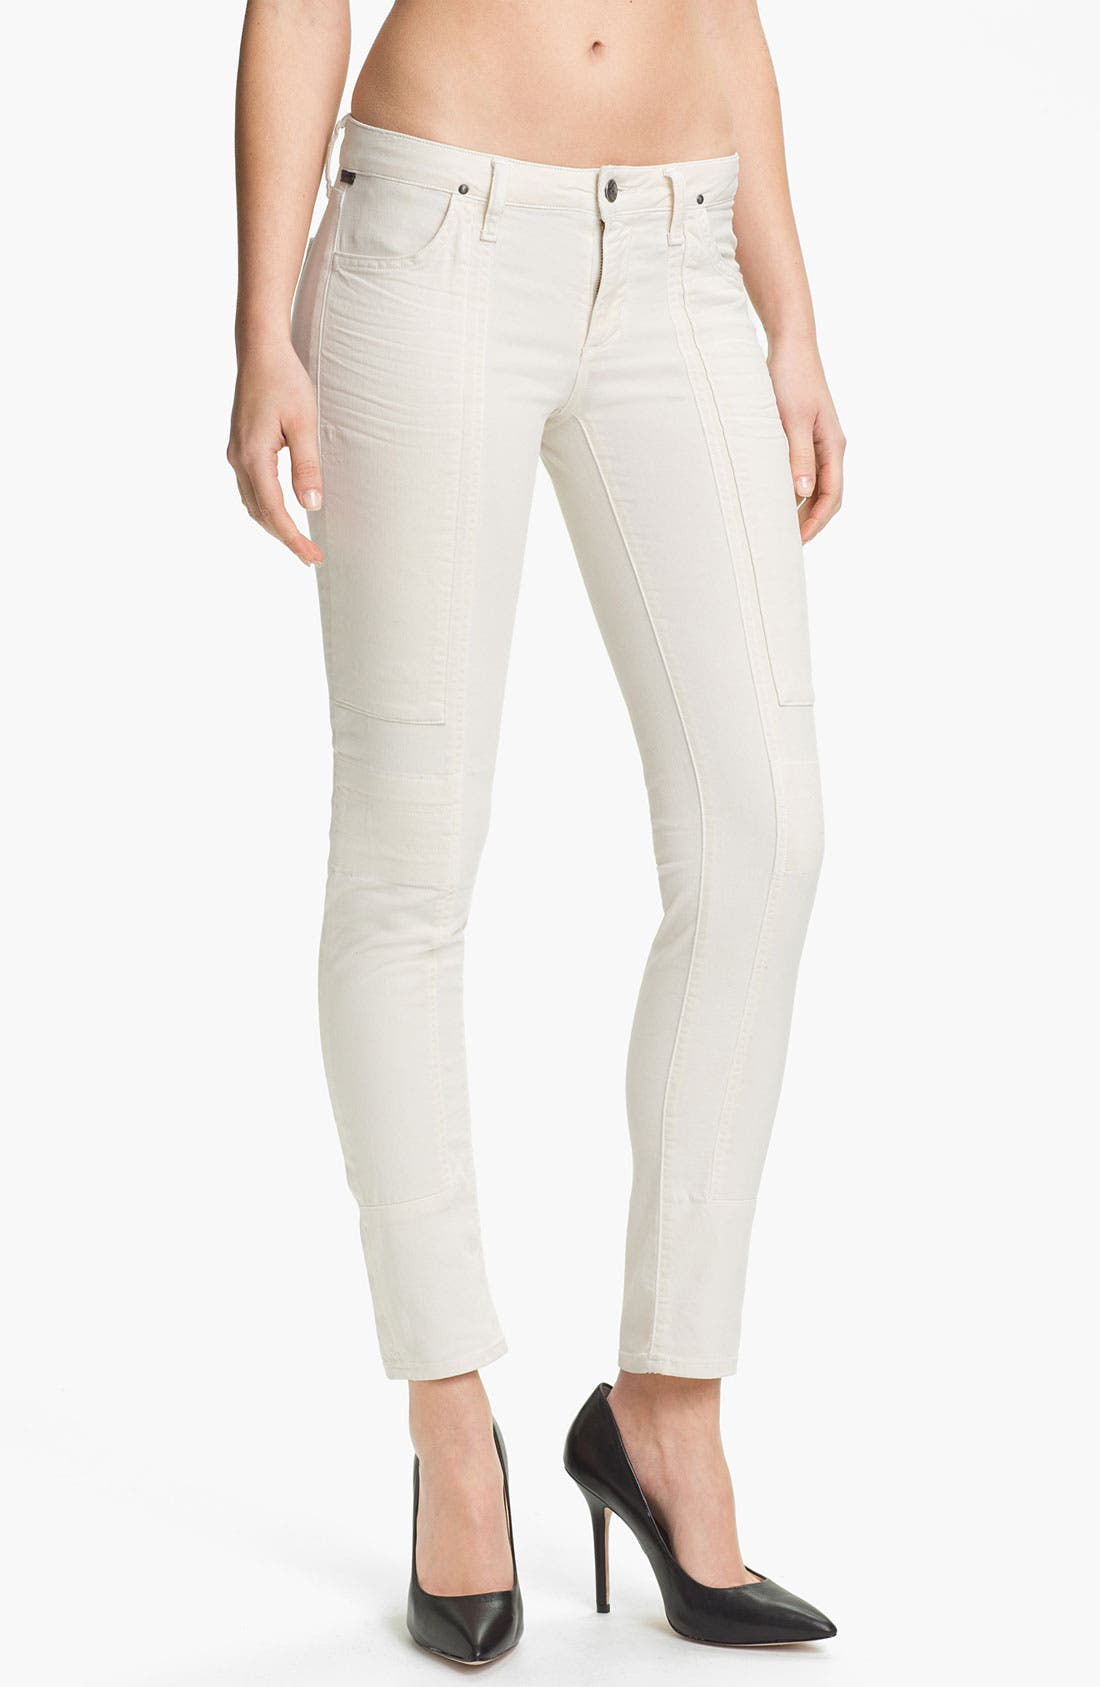 Alternate Image 1 Selected - Citizens of Humanity 'Logan' Moto Skinny Jeans (Ivory)